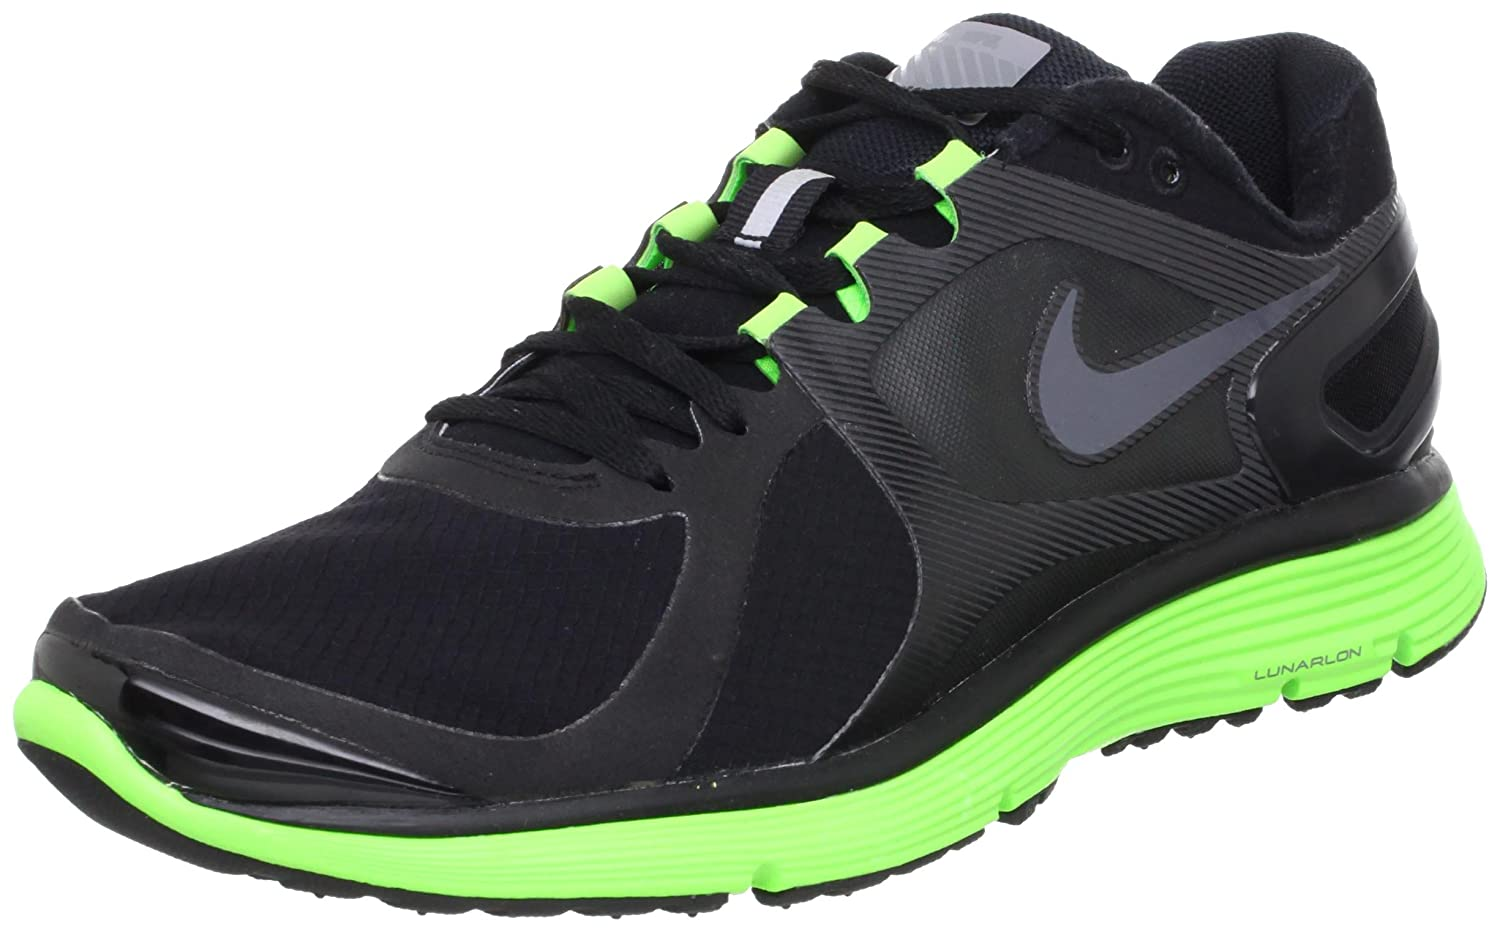 huge discount 028f3 01611 Nike Lunar Eclipse+ 2 Shield Running Shoes